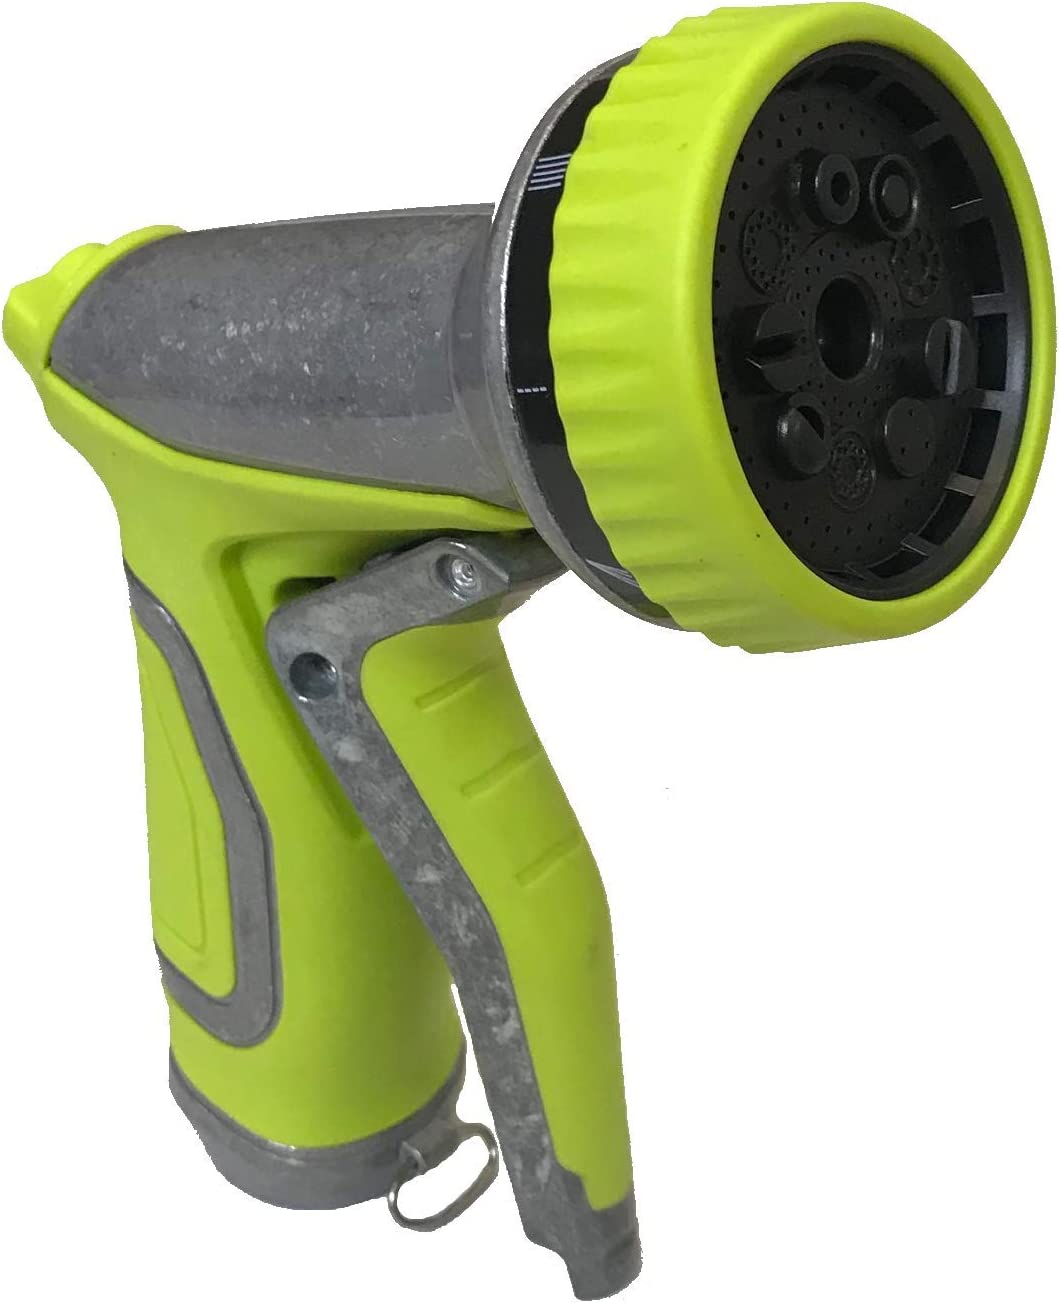 MAXFLO Garden Hose Nozzle | Metal Hose Spray Nozzle | Water Hose Nozzle Sprayer | Gardening 9 Adjustable Watering Patterns, Slip and Shock Resistant for Watering Plants, Cleaning and Car Wash | Green